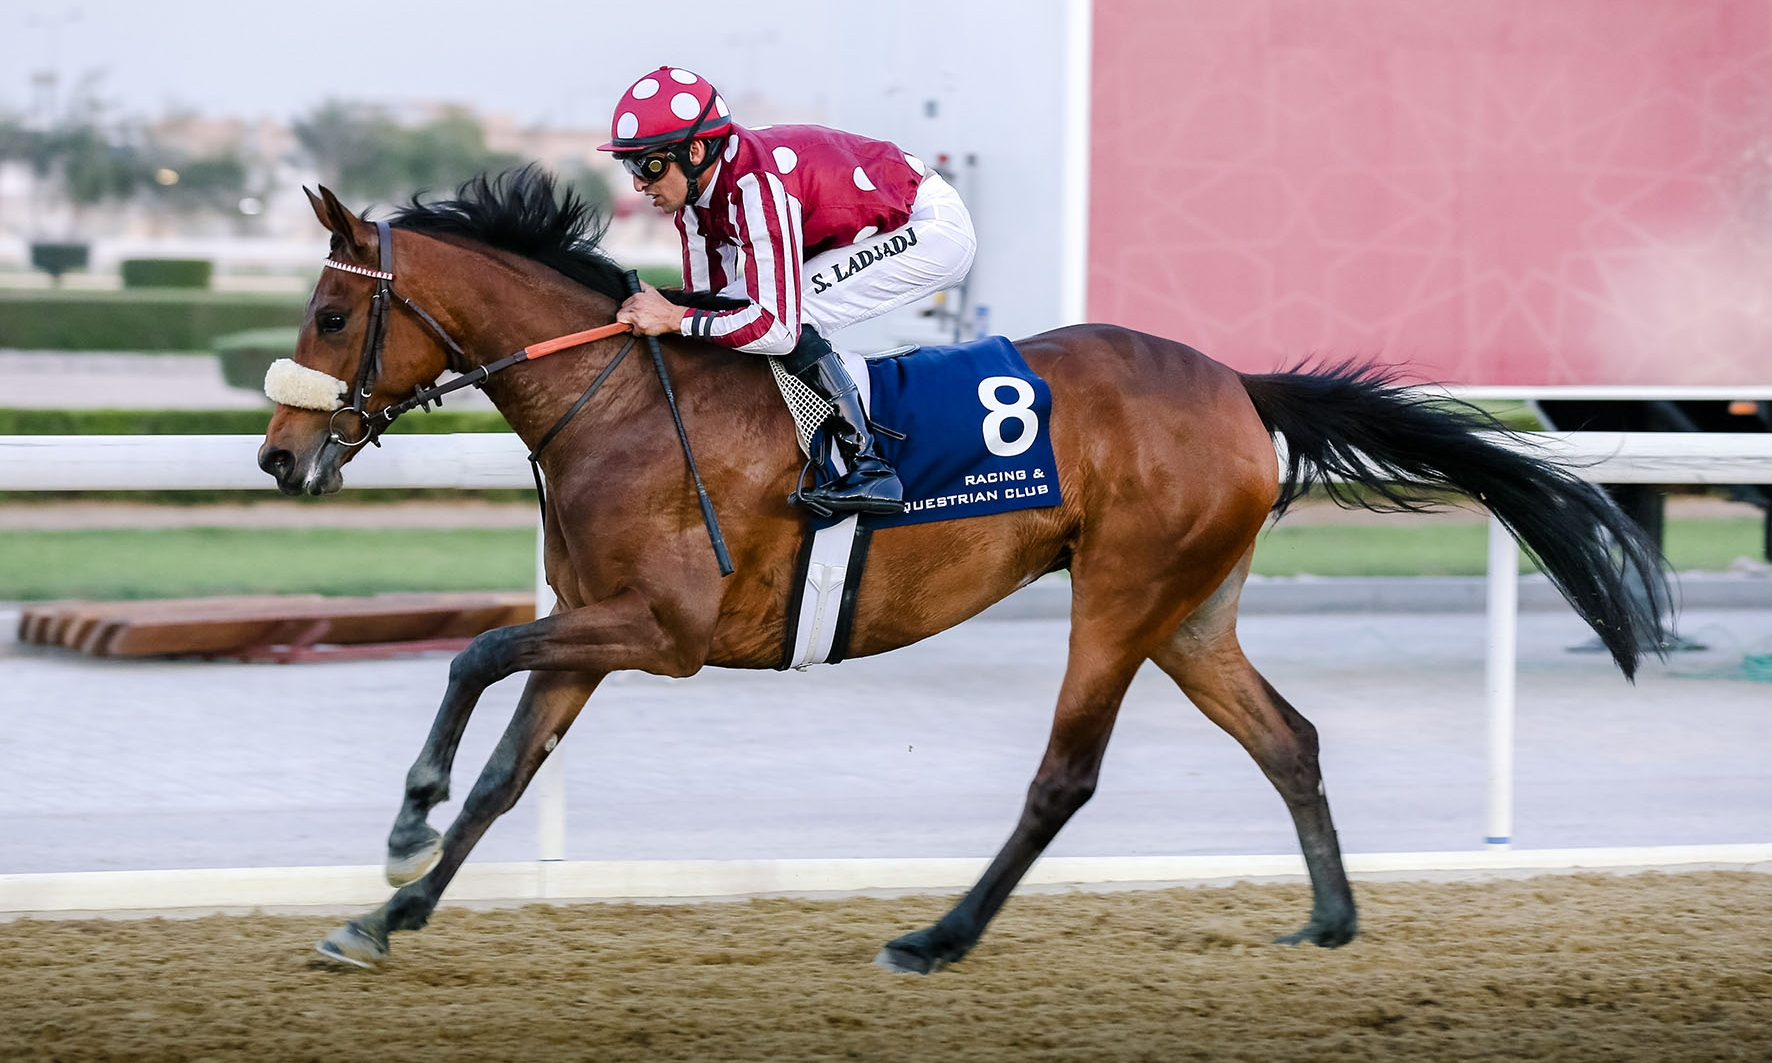 DOUBLE WIN AT DOHA FOR GENERAL's OFFSPRINGS